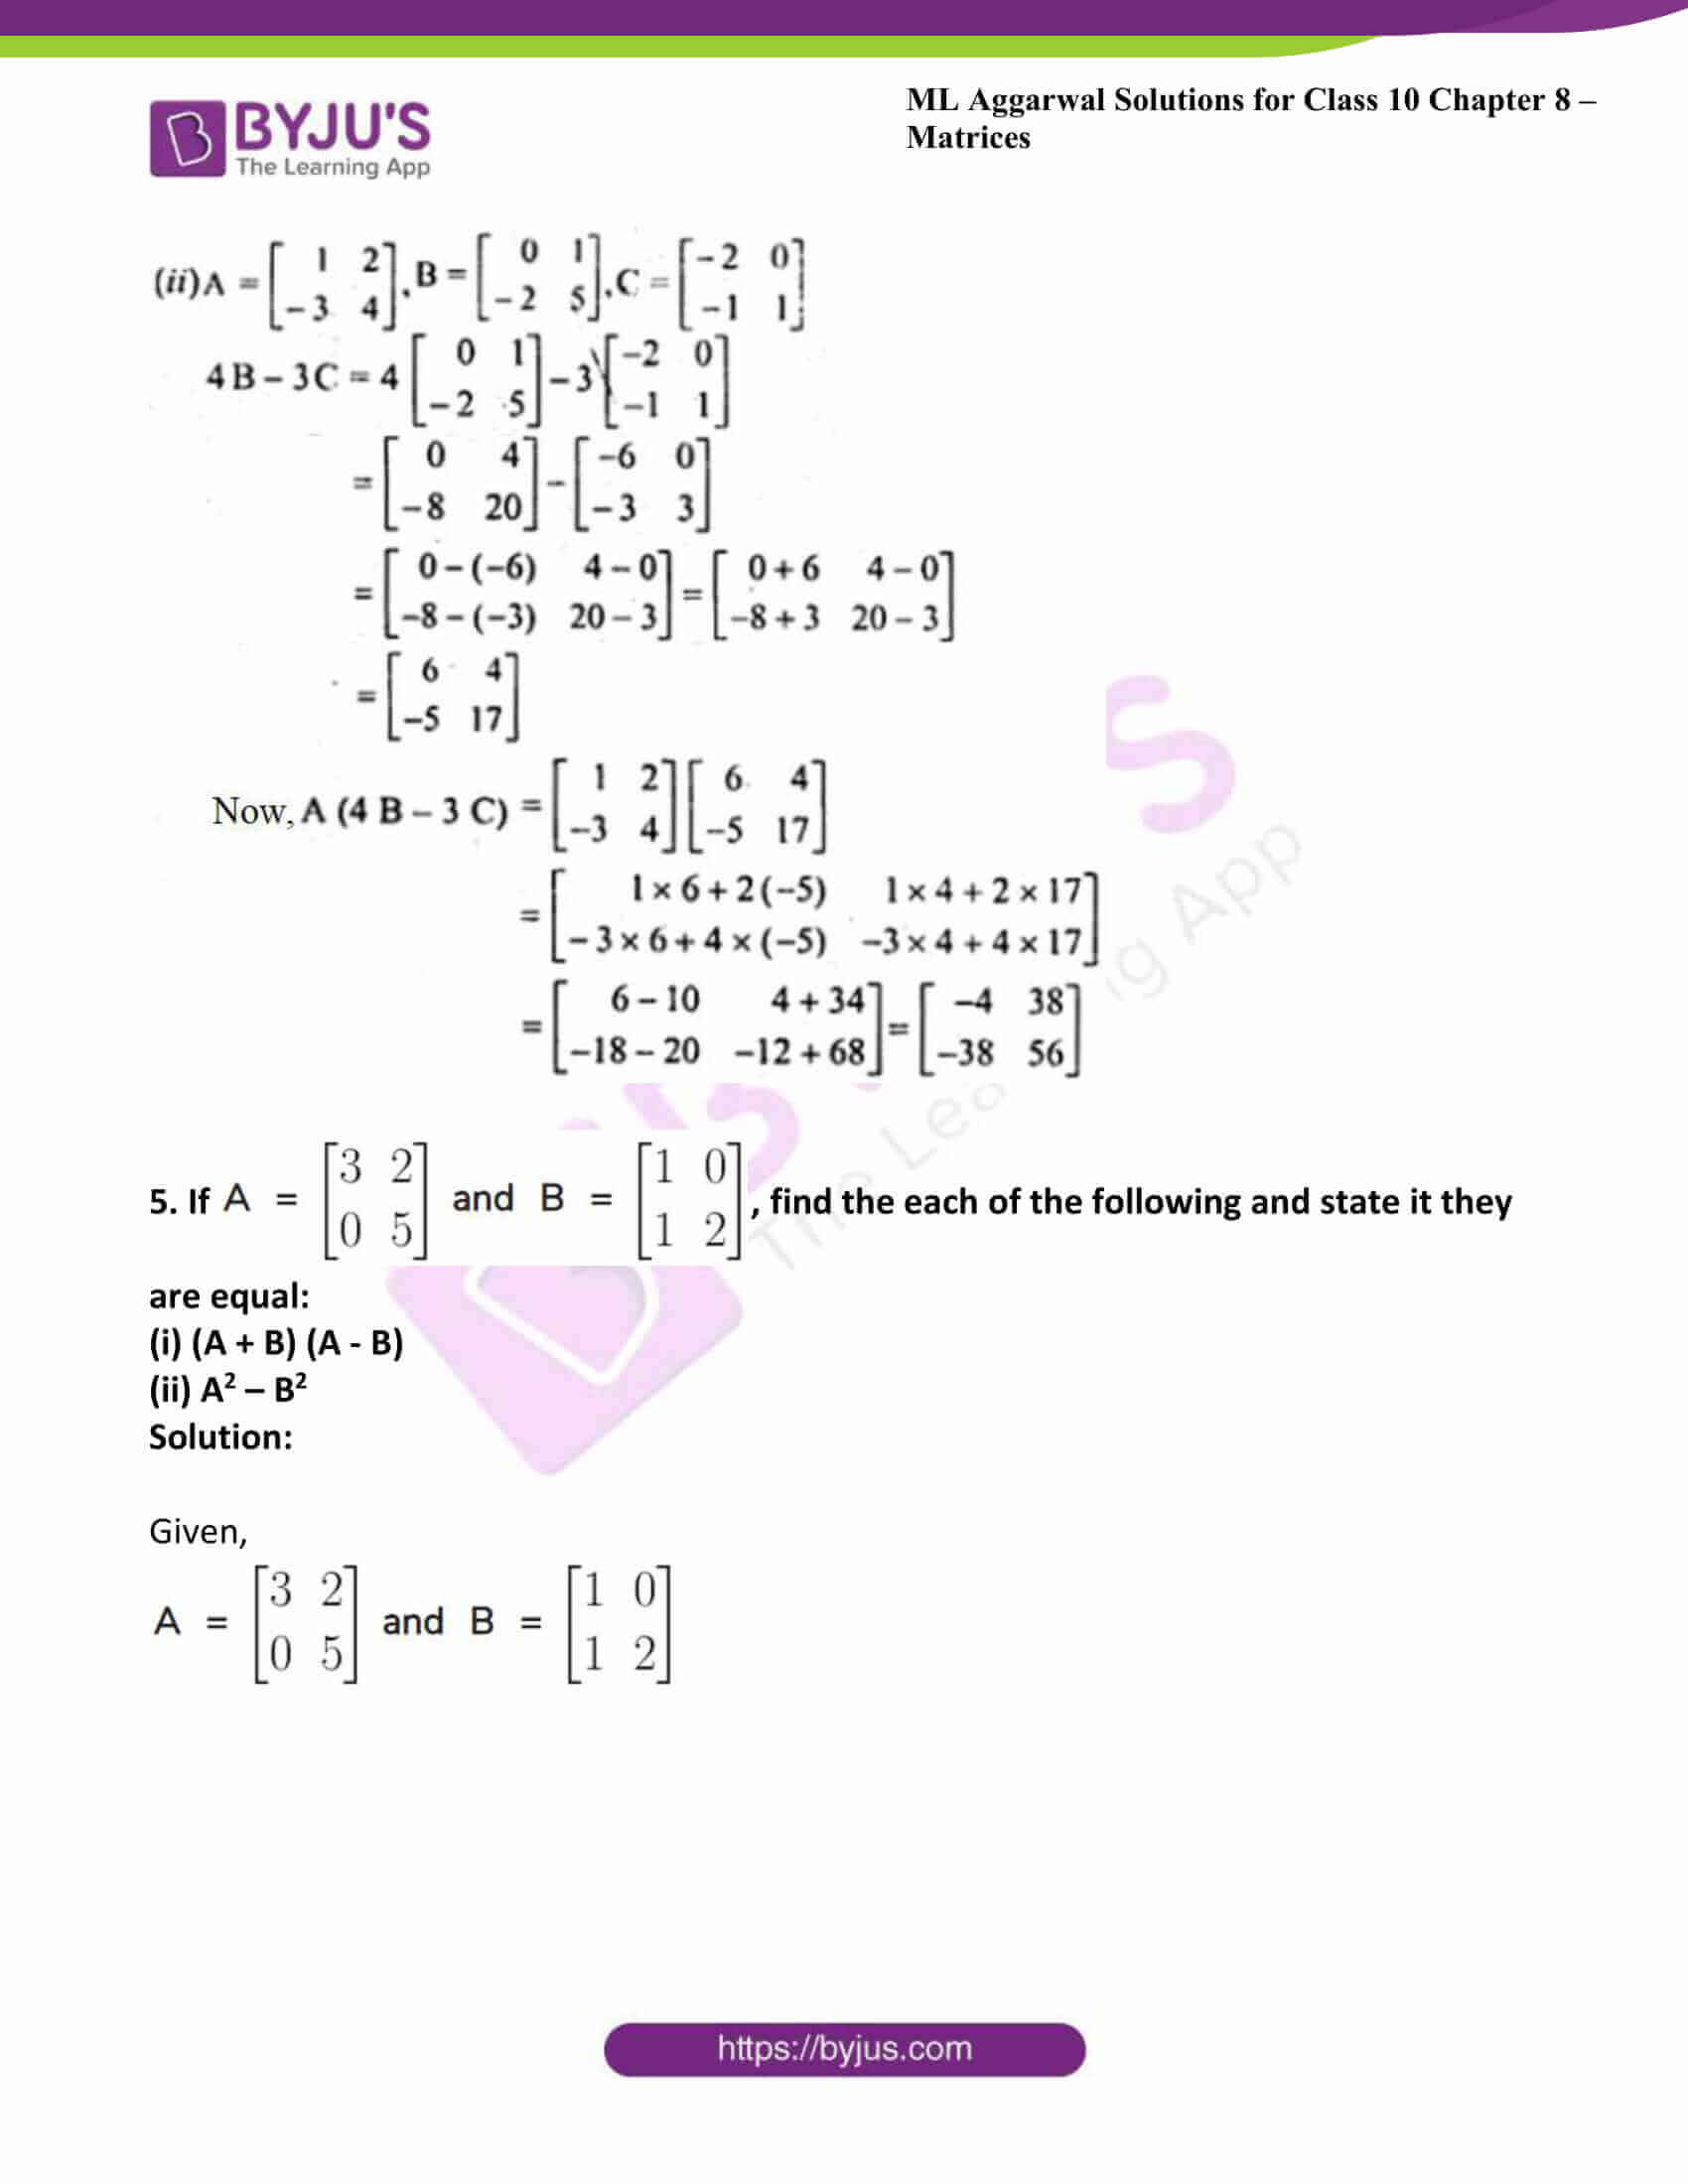 ml aggarwal solutions class 10 maths chapter 8 37